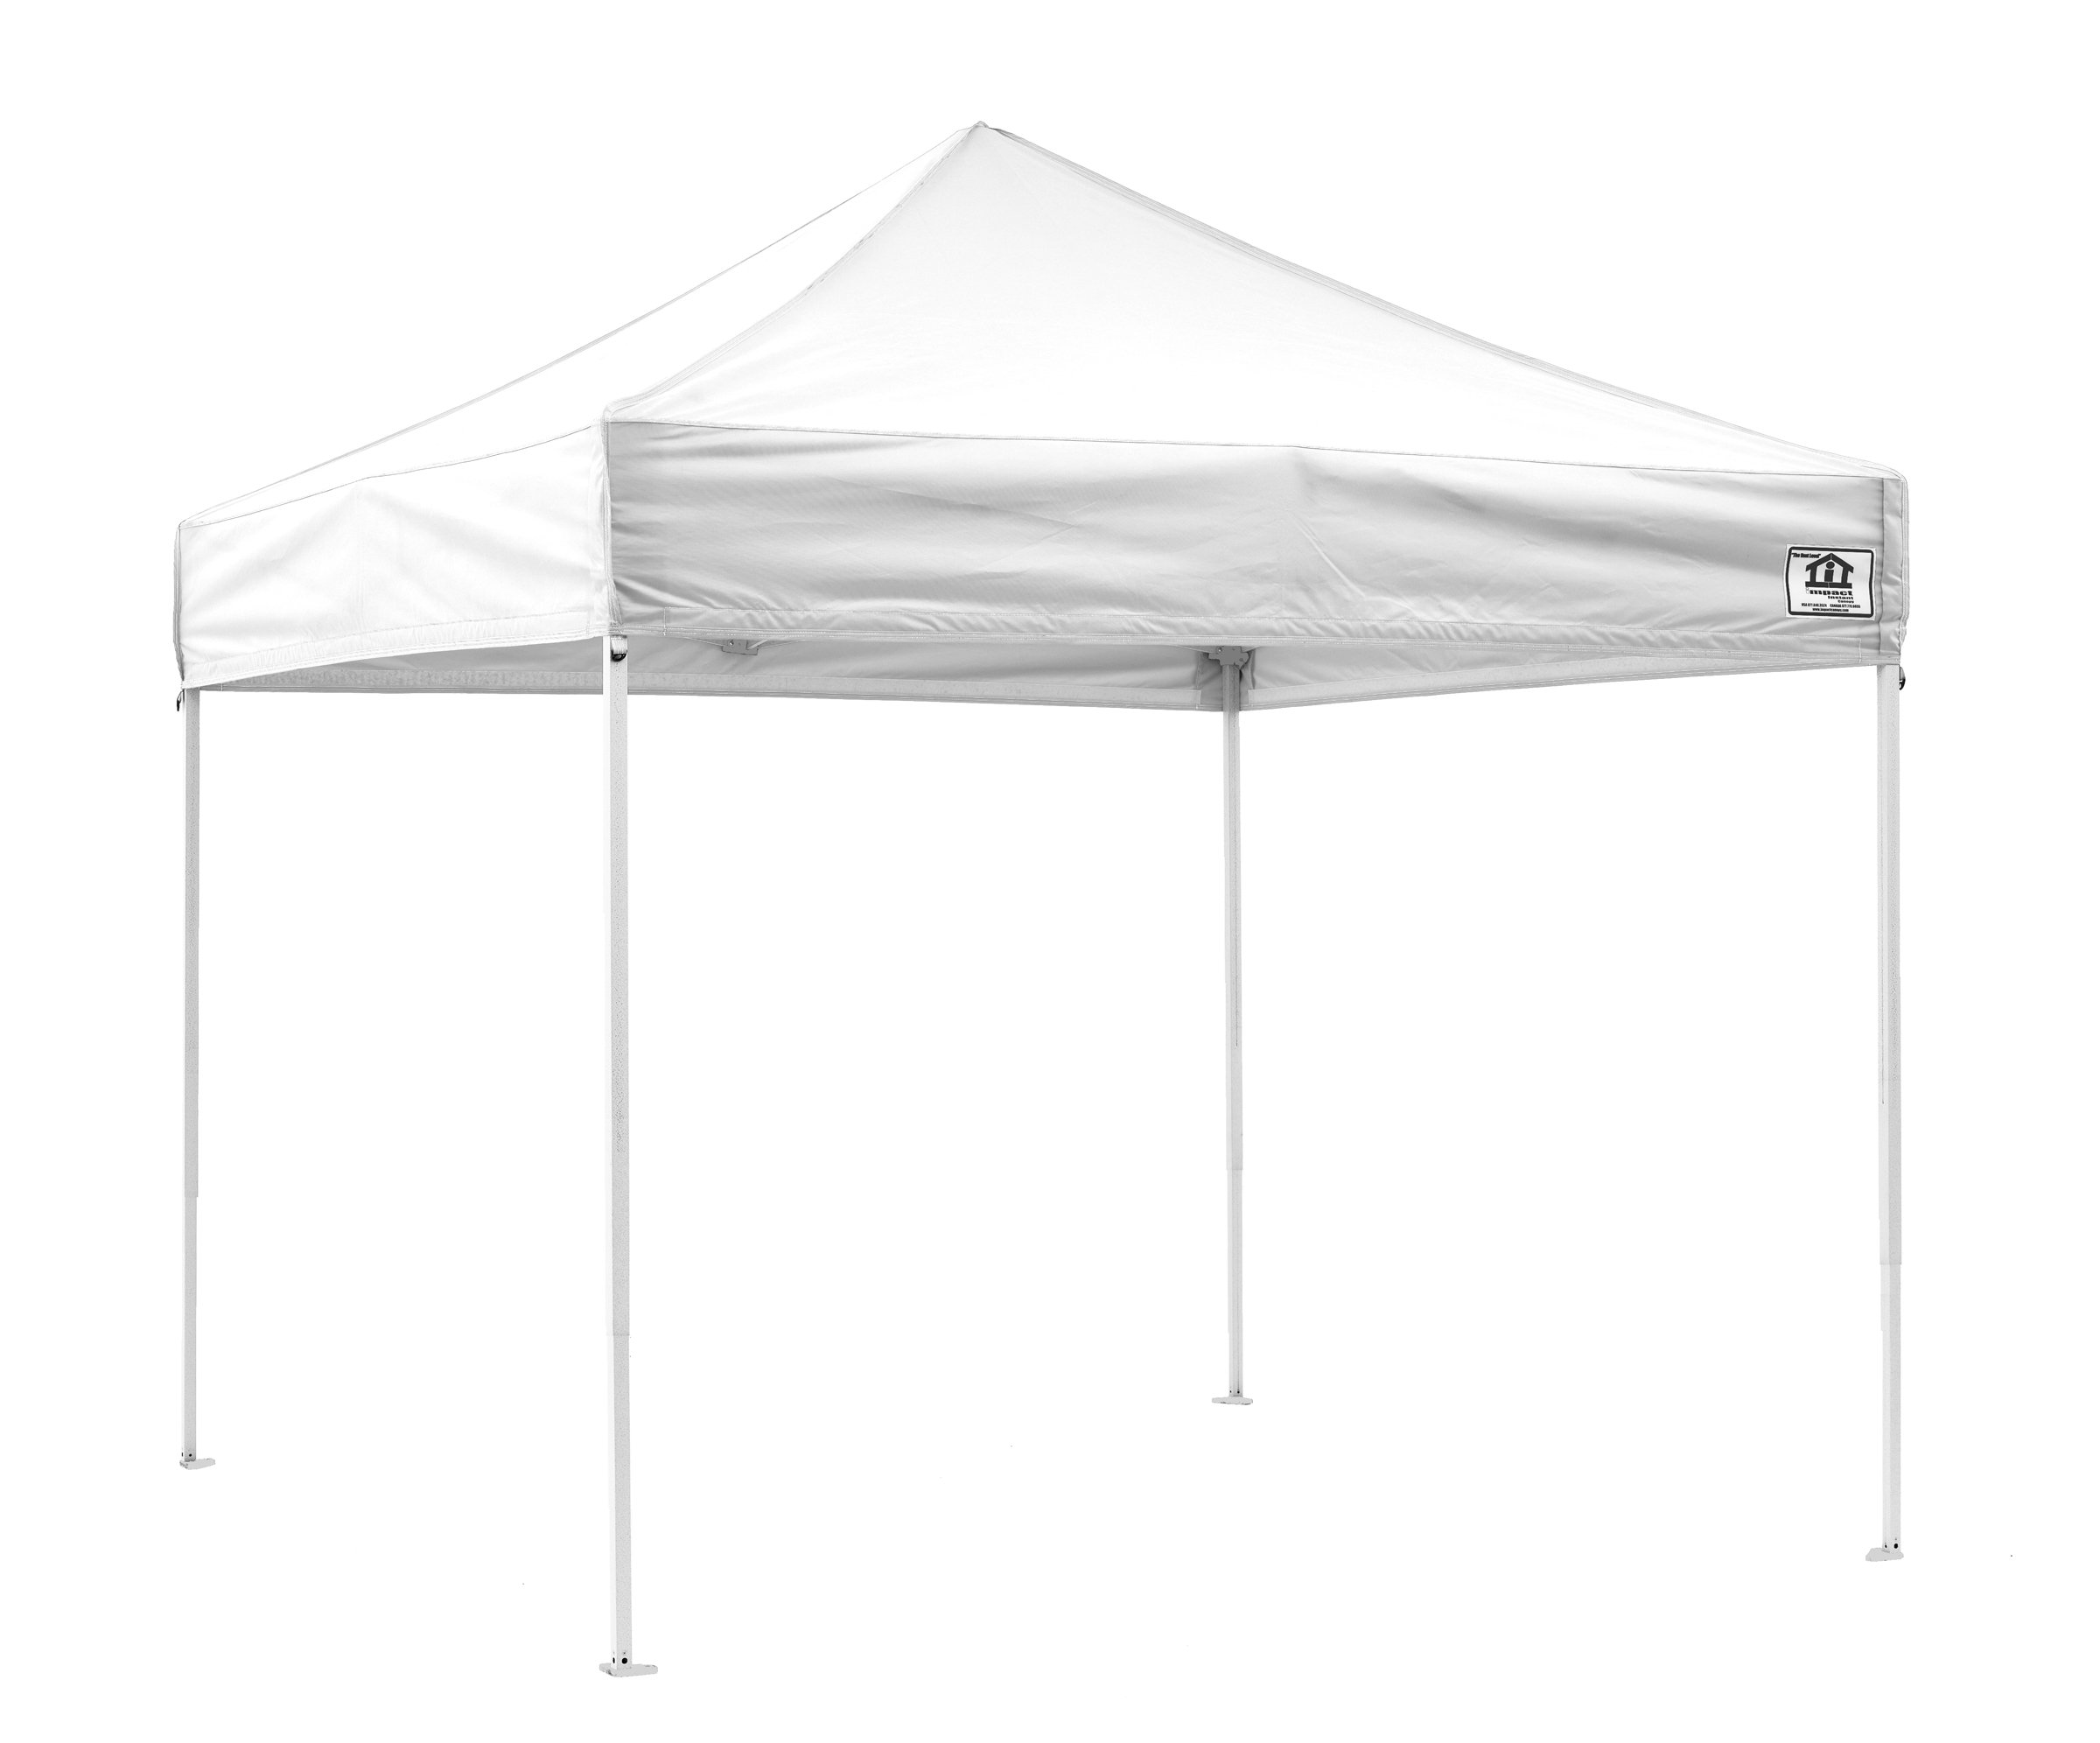 Impact Canopy 10x10 EZ Pop Up Canopy Tent Portable Canopy with Roller Bag (Choose Color)